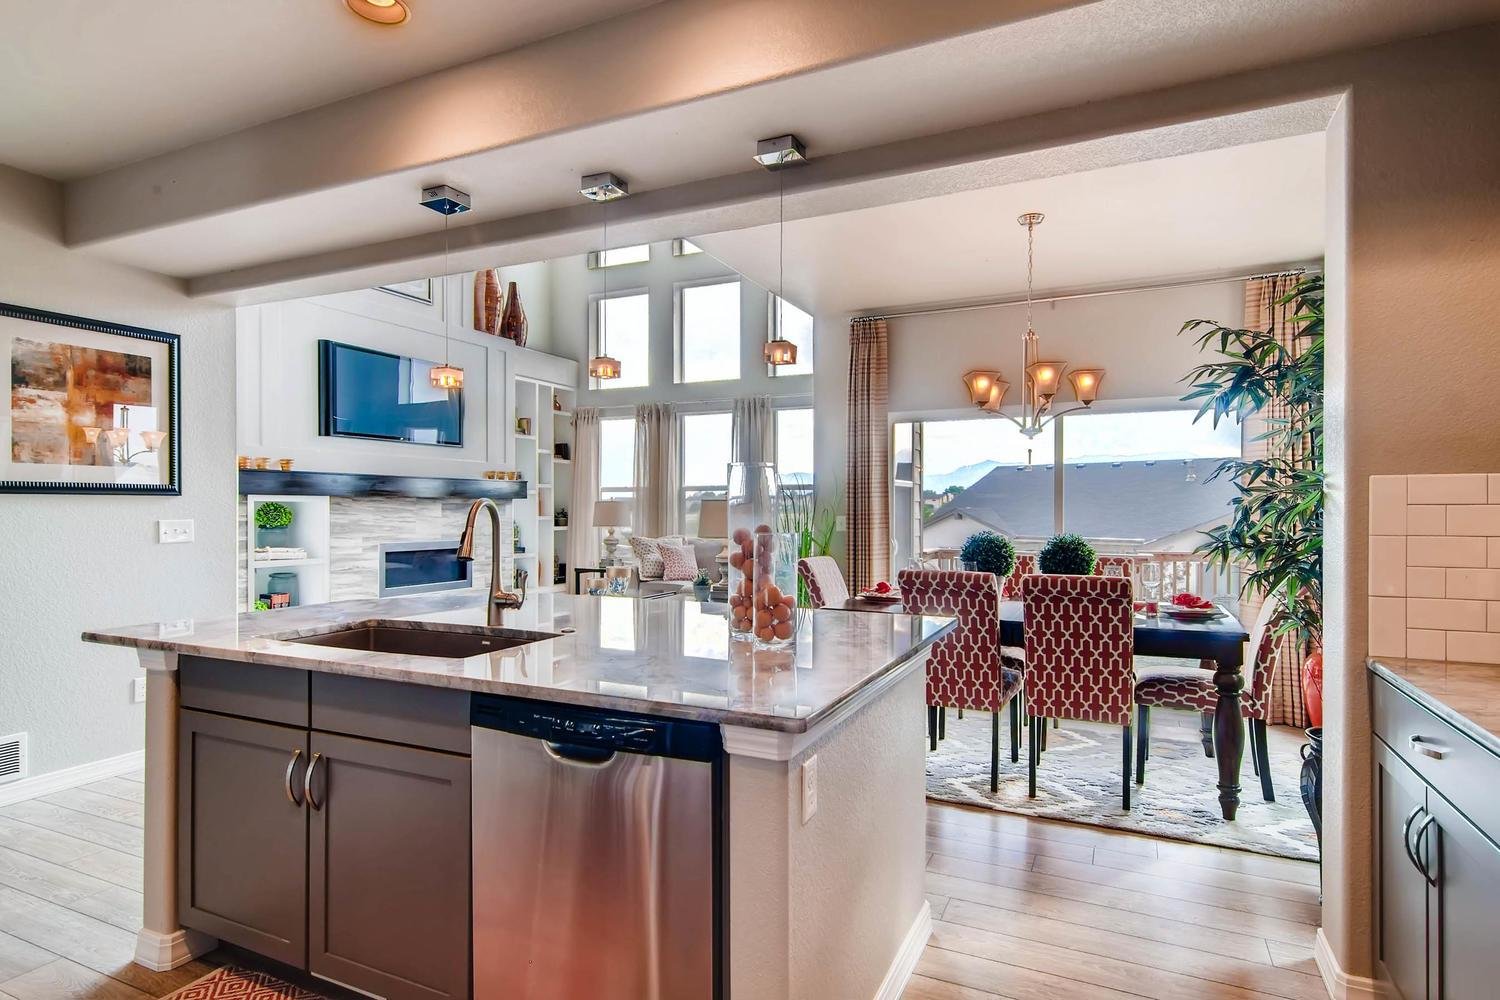 Kitchen featured in the Hannah By Classic Homes in Colorado Springs, CO